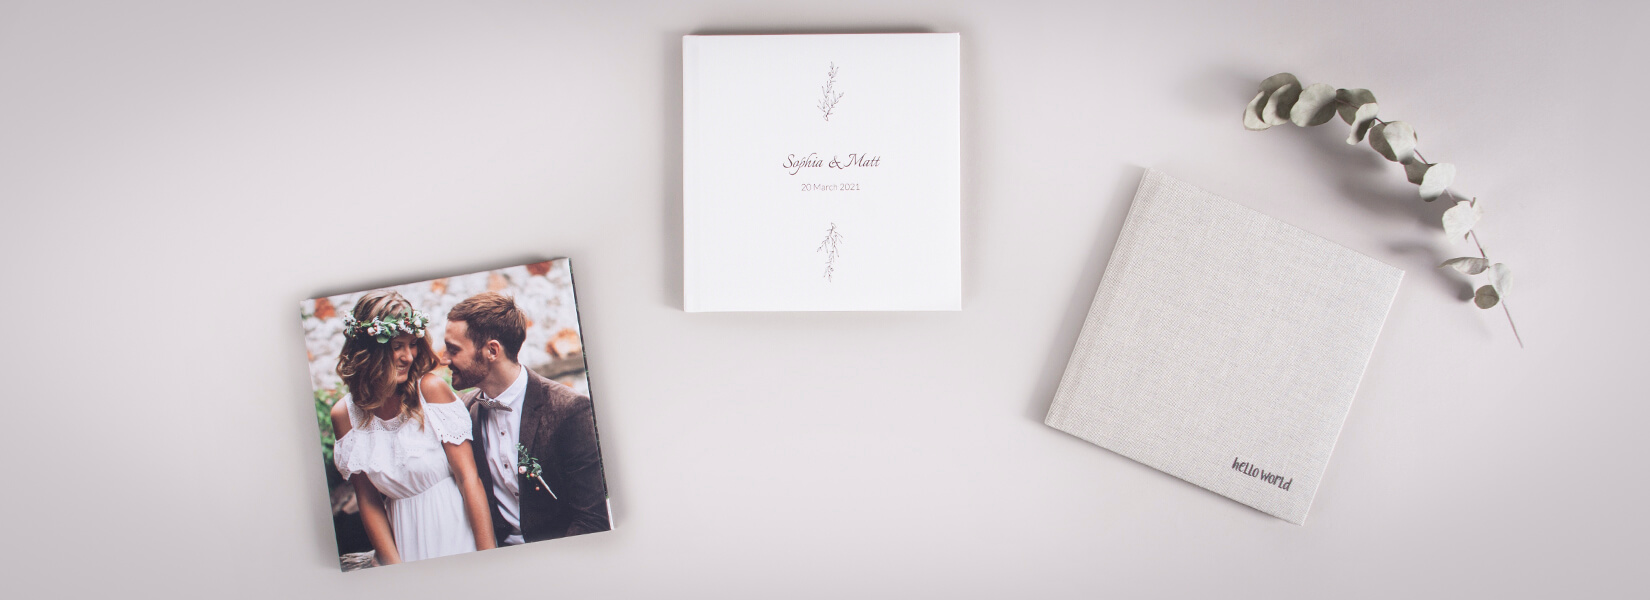 Lite Album Creative Gamma Exclusive perfect for mini sessions